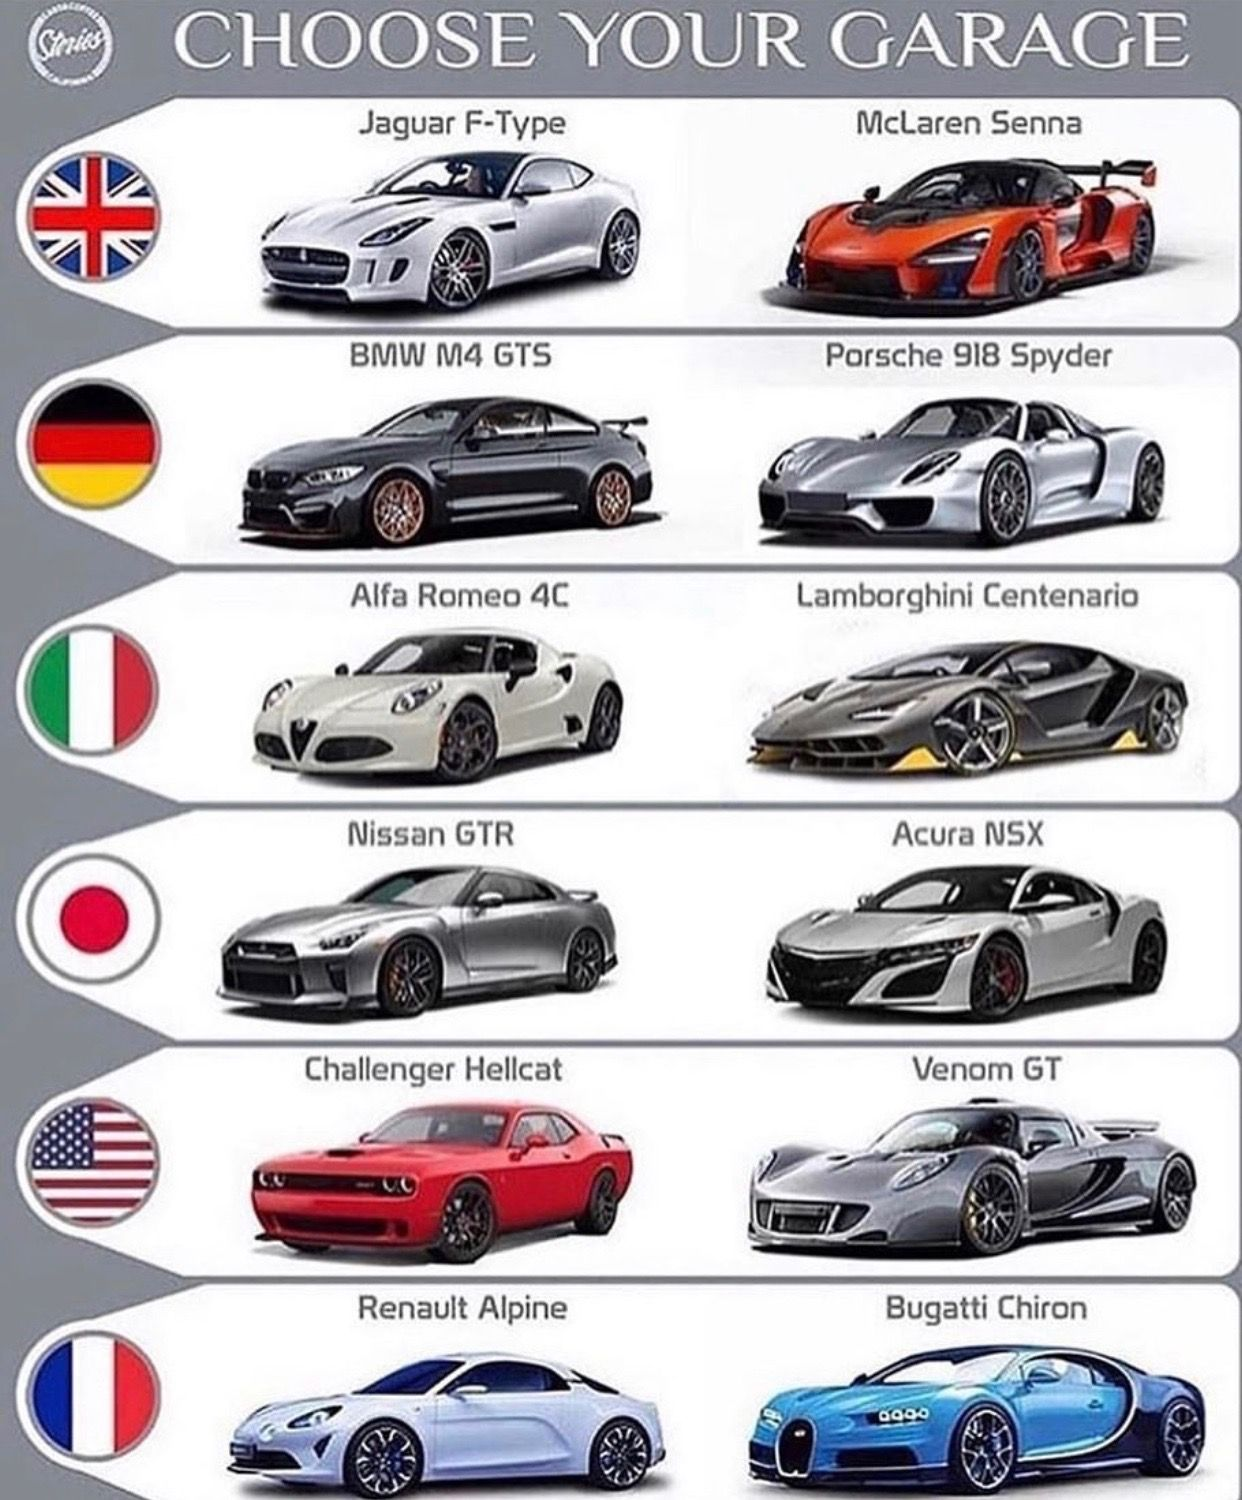 Super Cars And Their Origin Country In 2020 Super Cars Car Brands Logos Amazing Cars